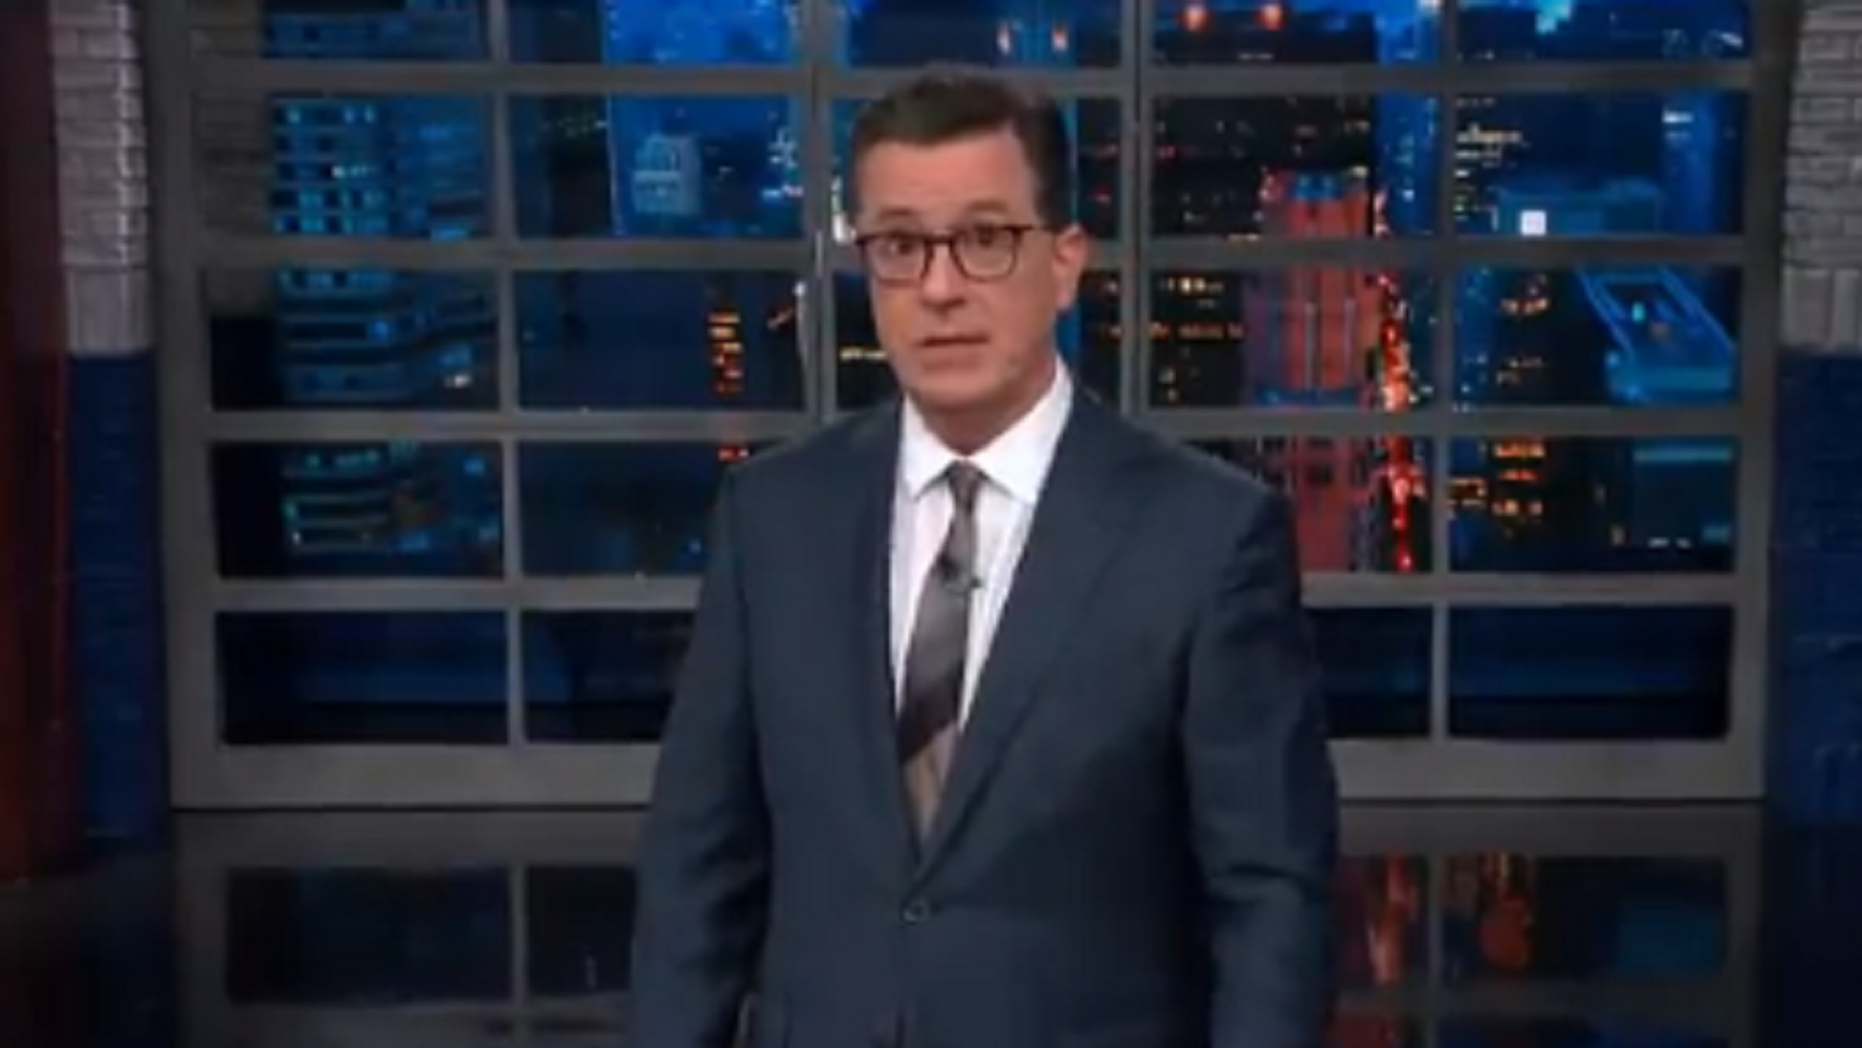 'Late Show' host Stephen Colbert poked fun at a the midterm elections during his show Monday.